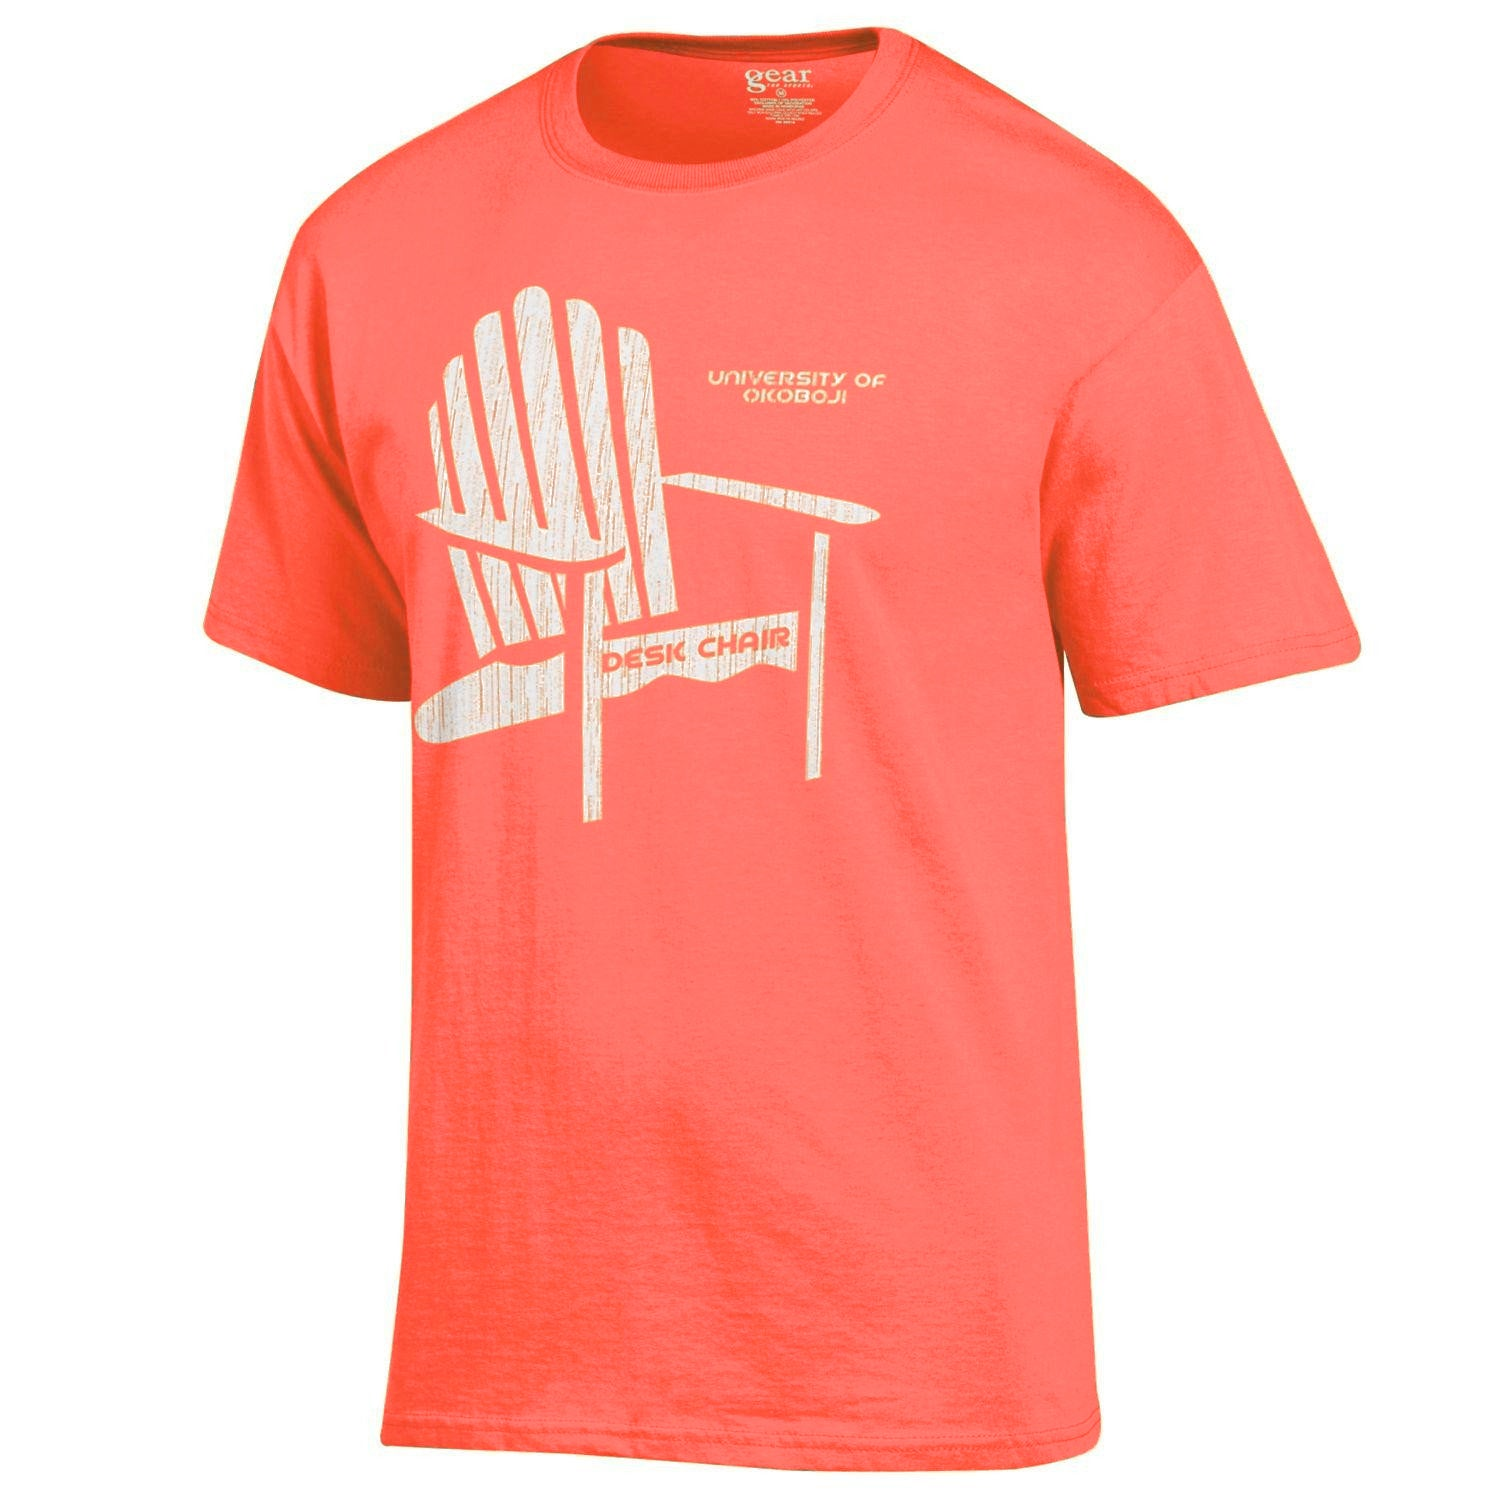 Desk Chair Tee - Barn Red